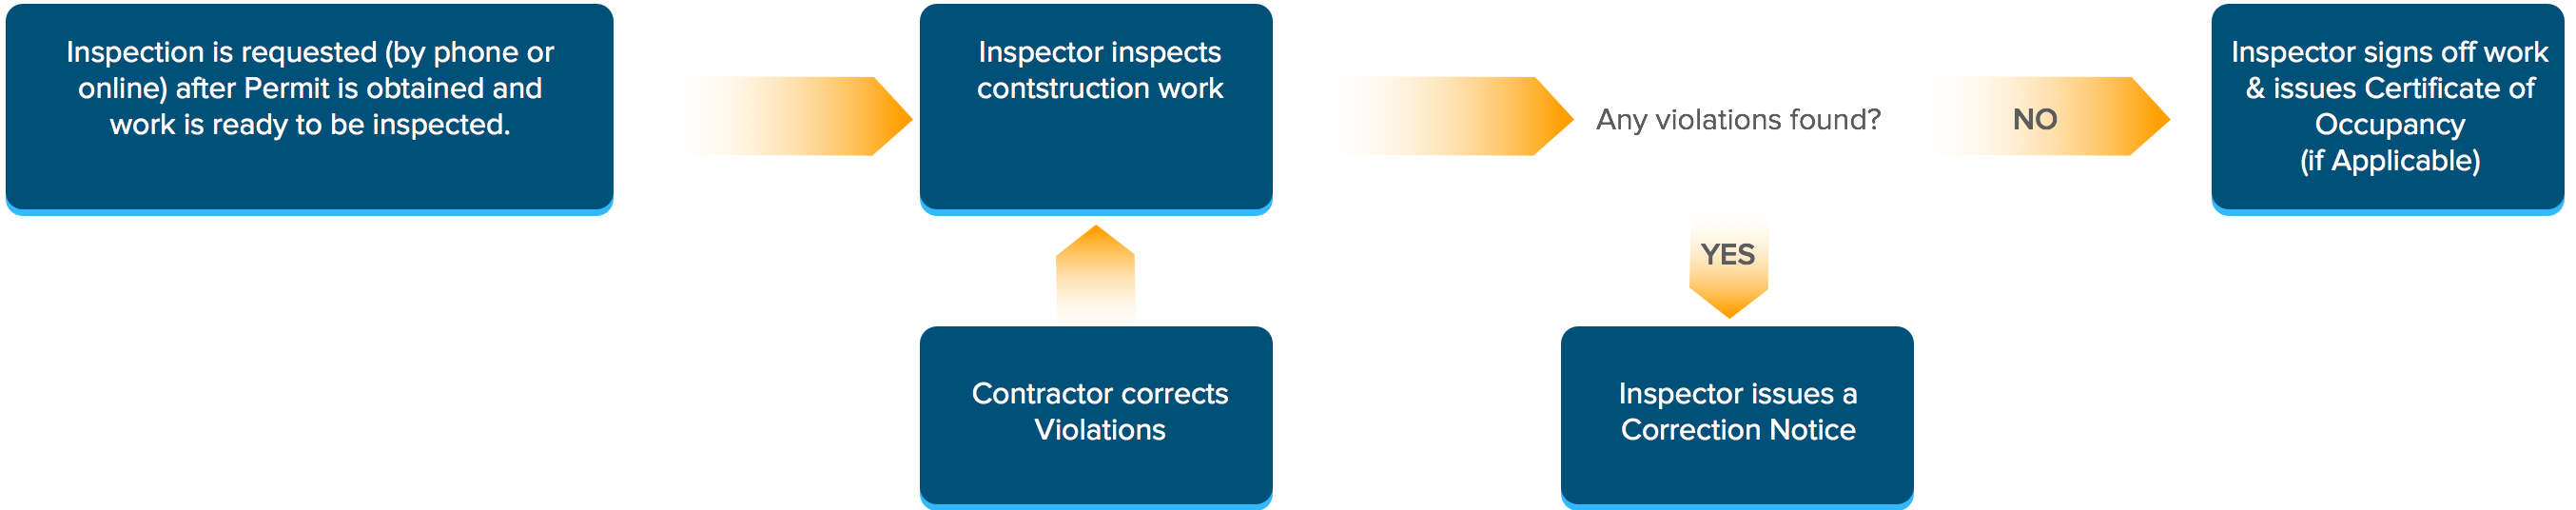 Flowchart For The Inspection Process